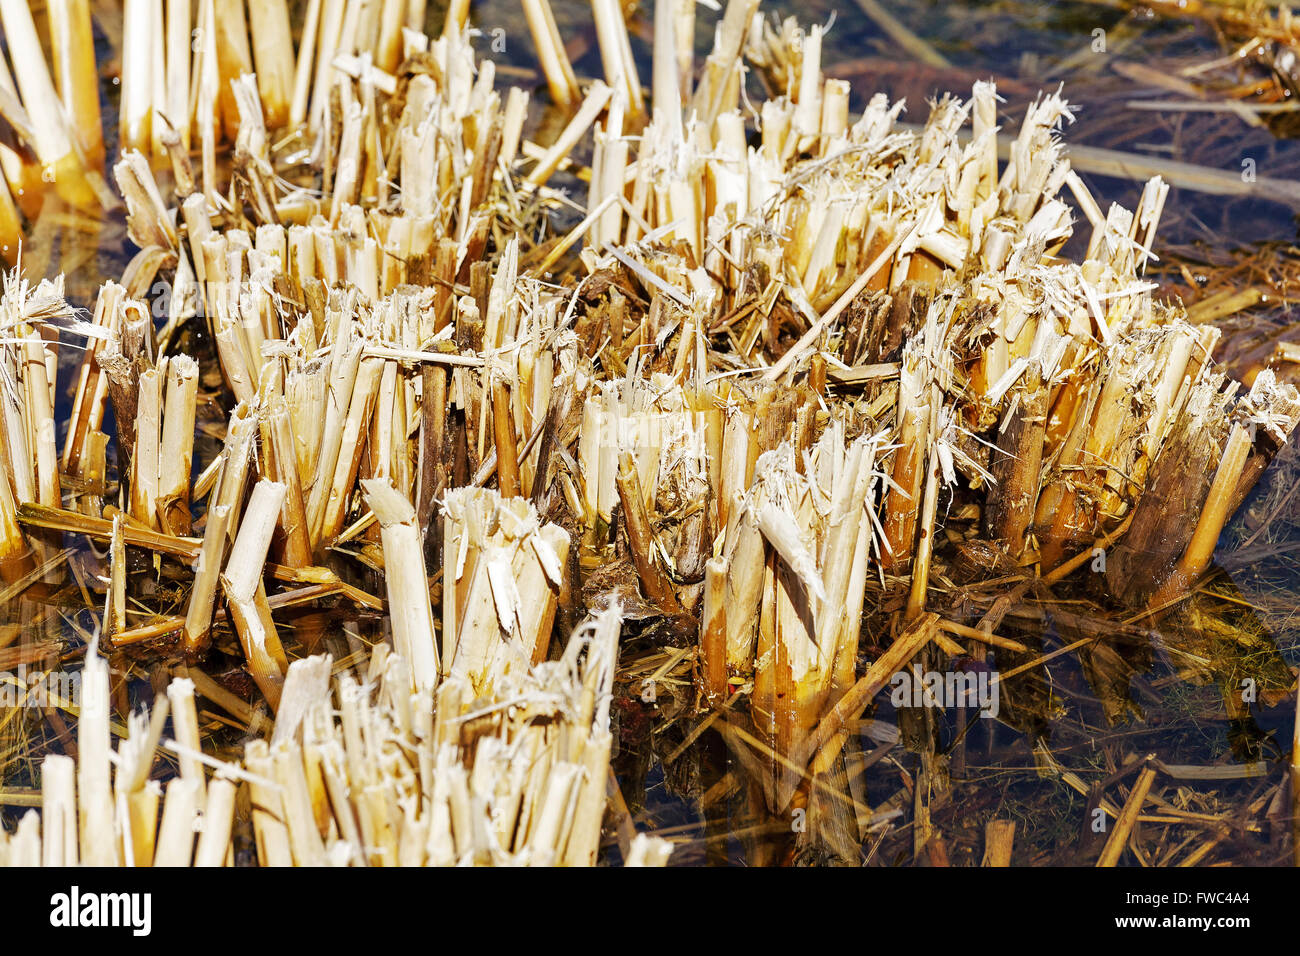 Stems of a reed that are cut off - Stock Image